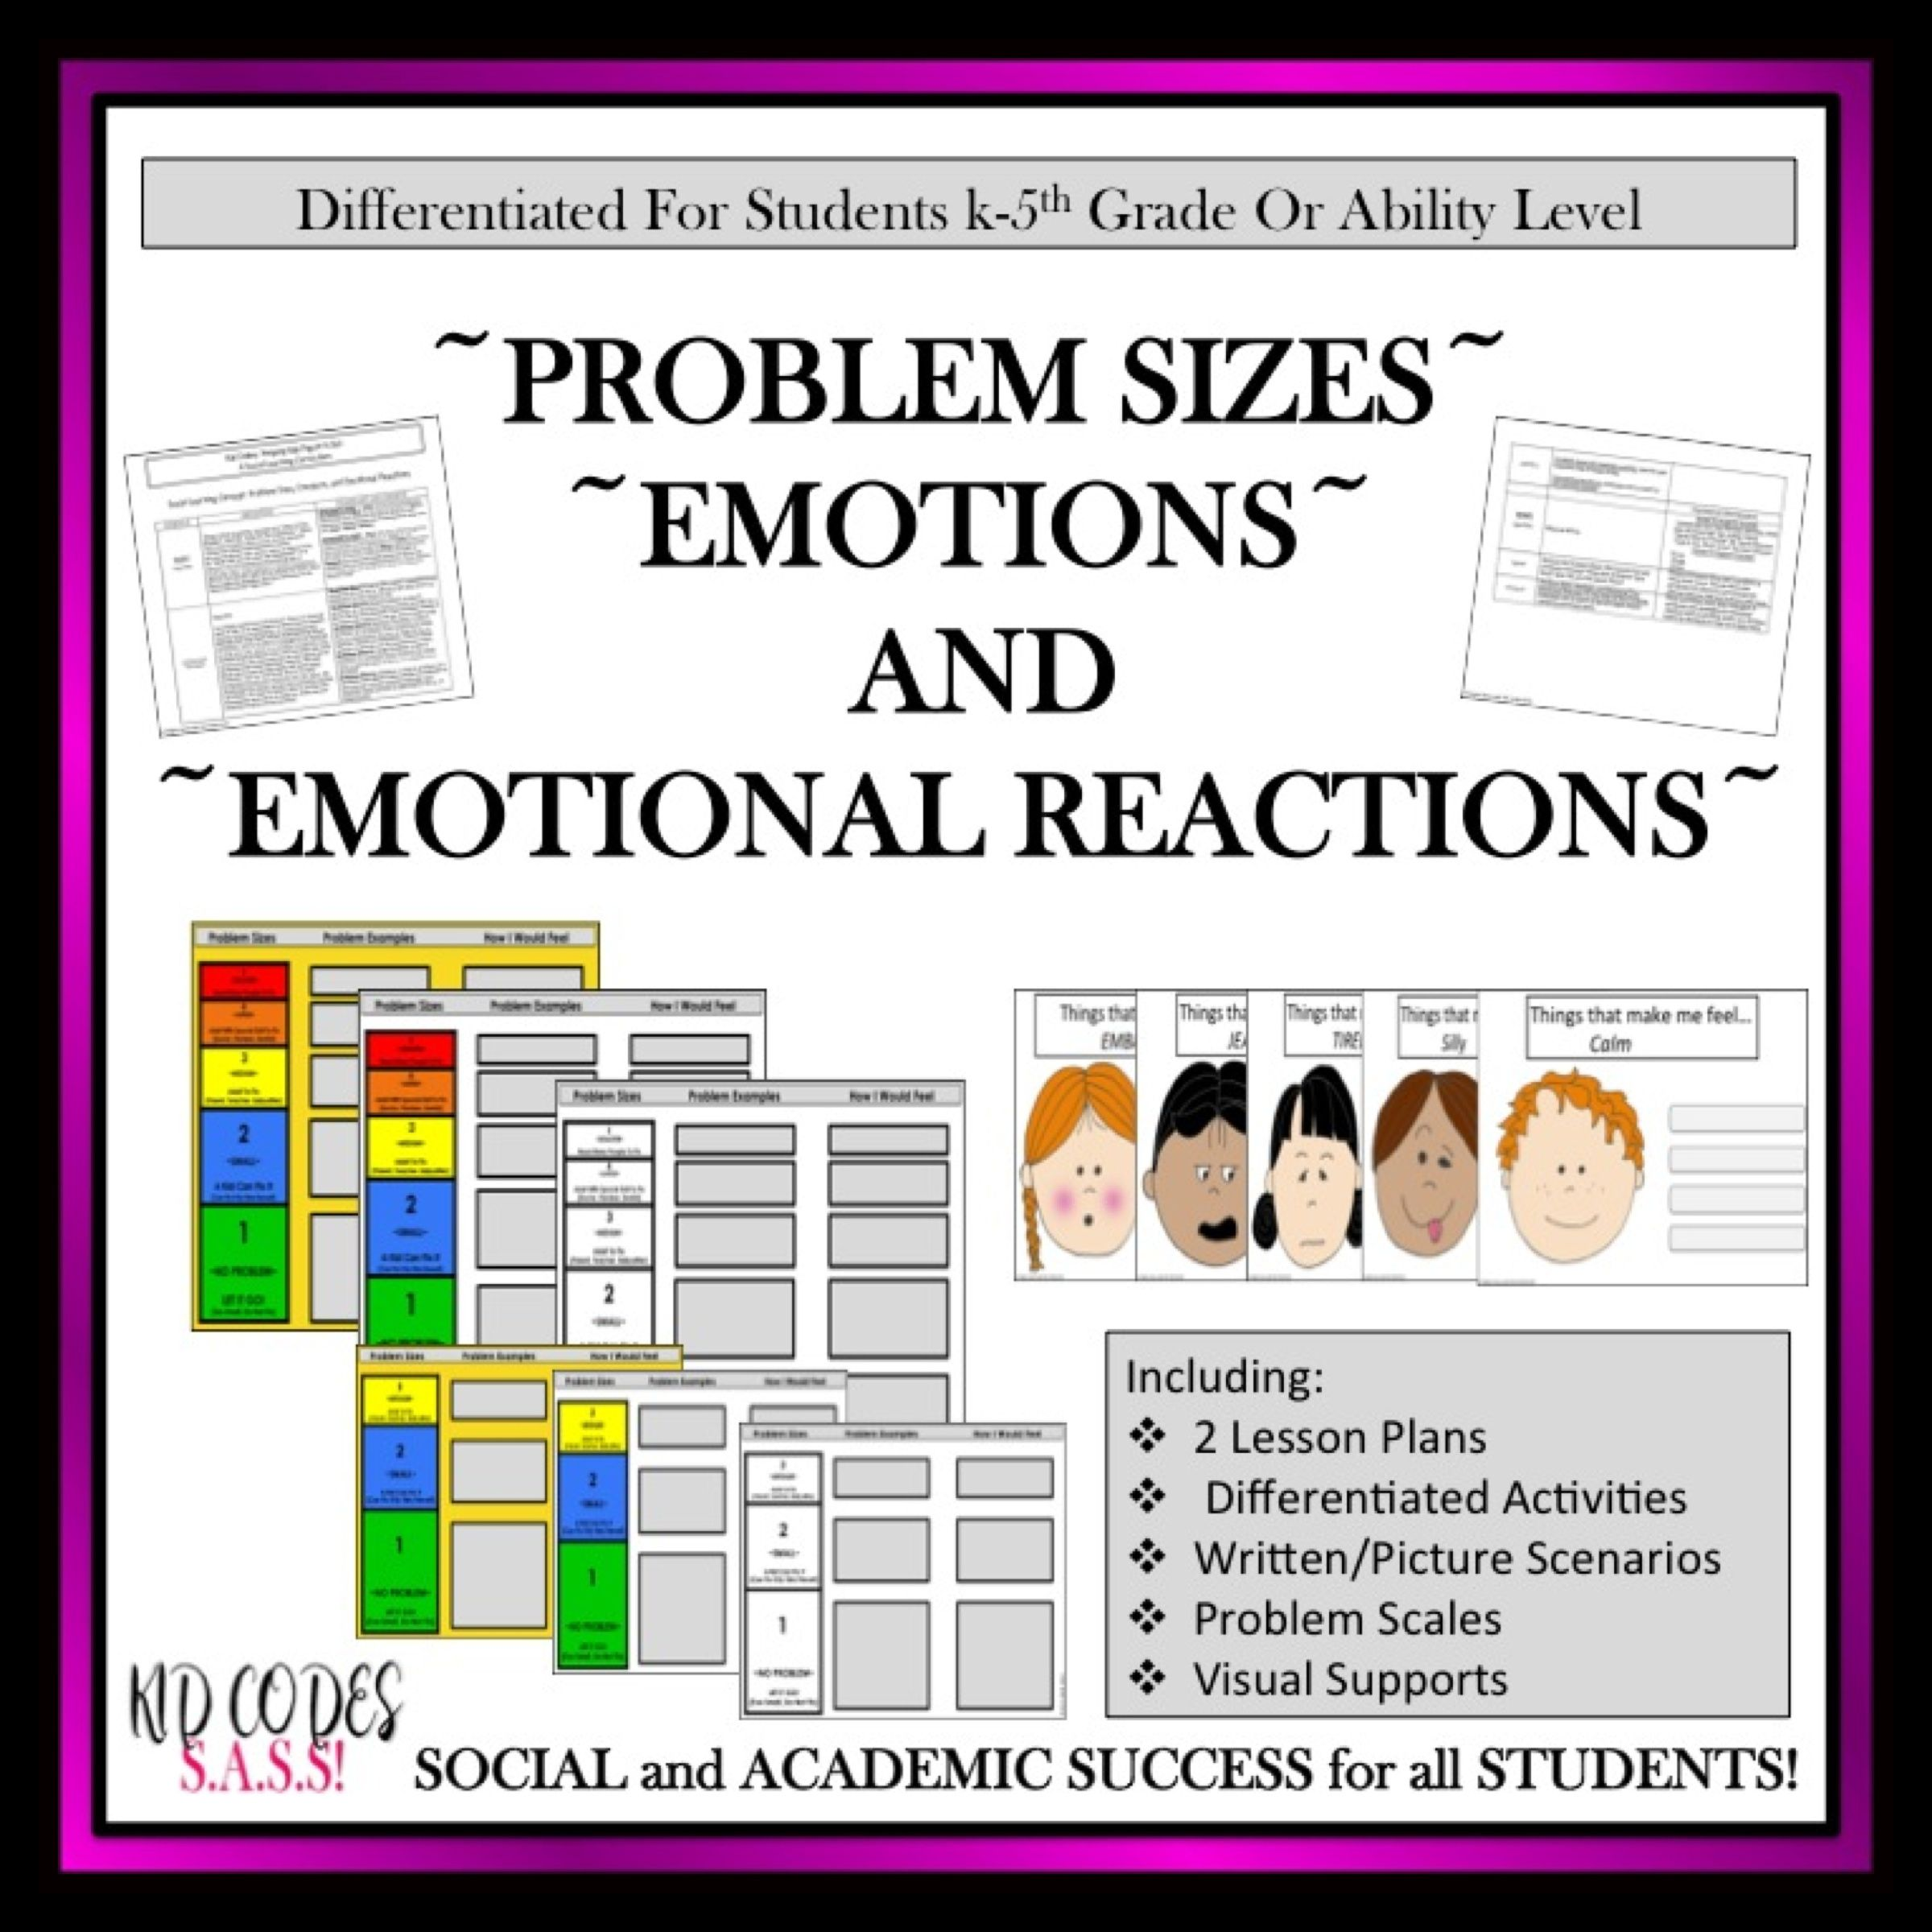 Problem Sizes Emotions And Reactions Differentiated